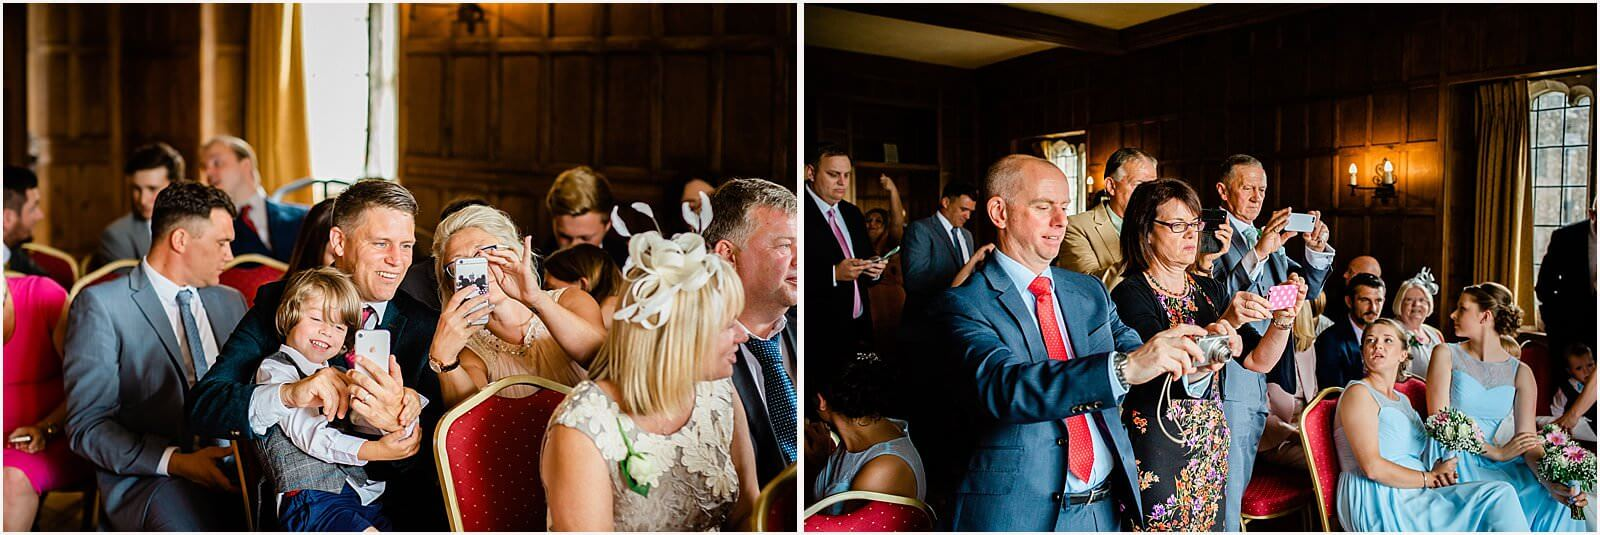 Lympne Castle Wedding | Louise & Rob 36